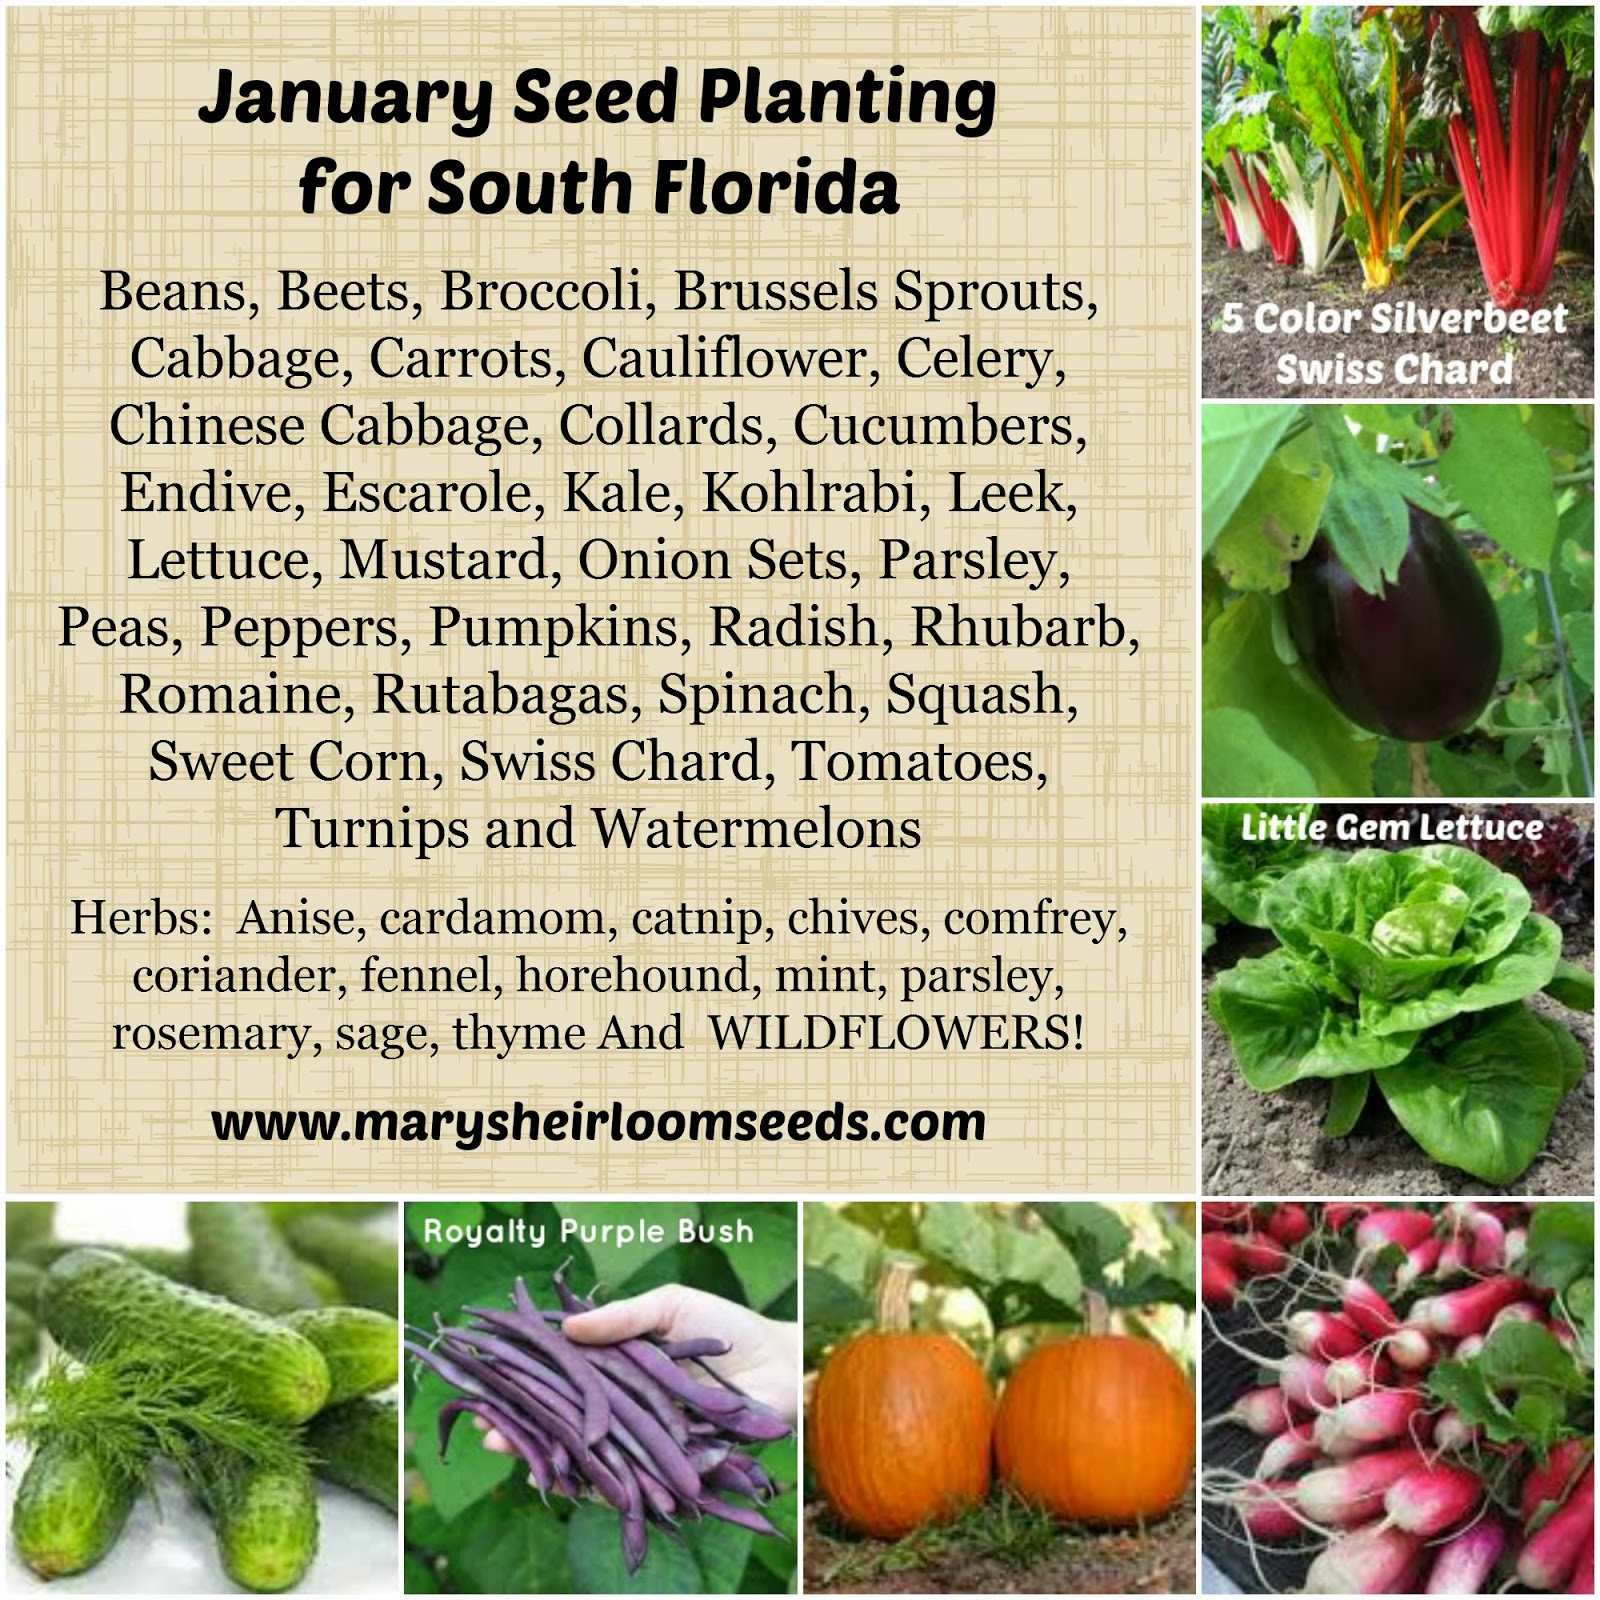 2017 Planting Guide January Seed In South Florida